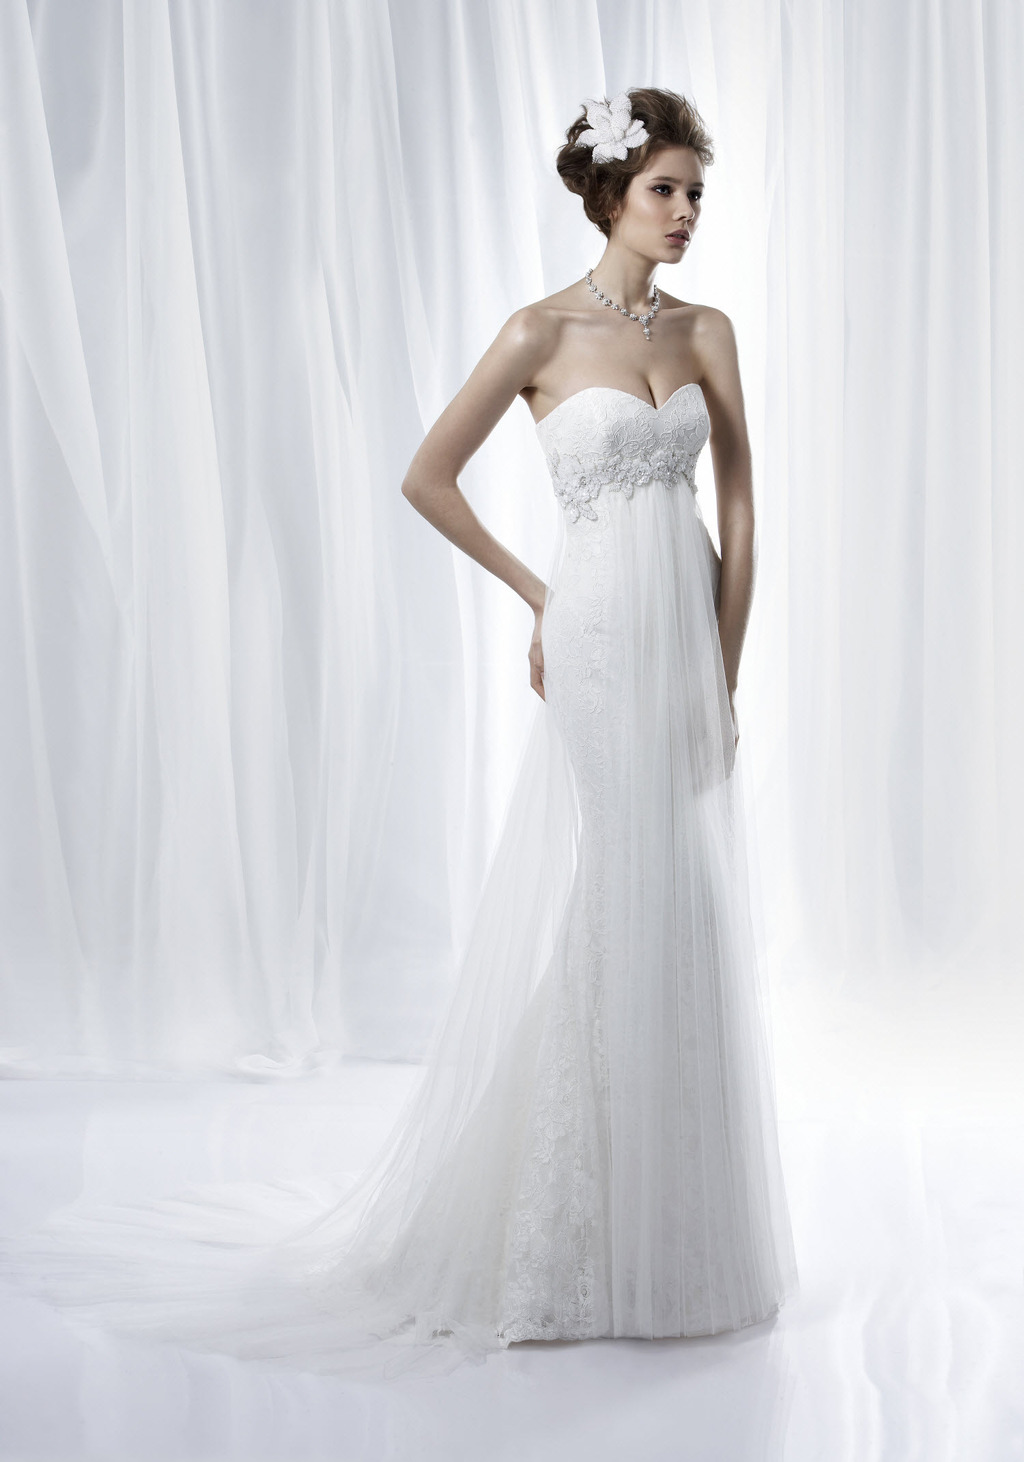 Ivory sweetheart neckline sheath/column wedding dress with lace-embellished bodice and sheer tulle o